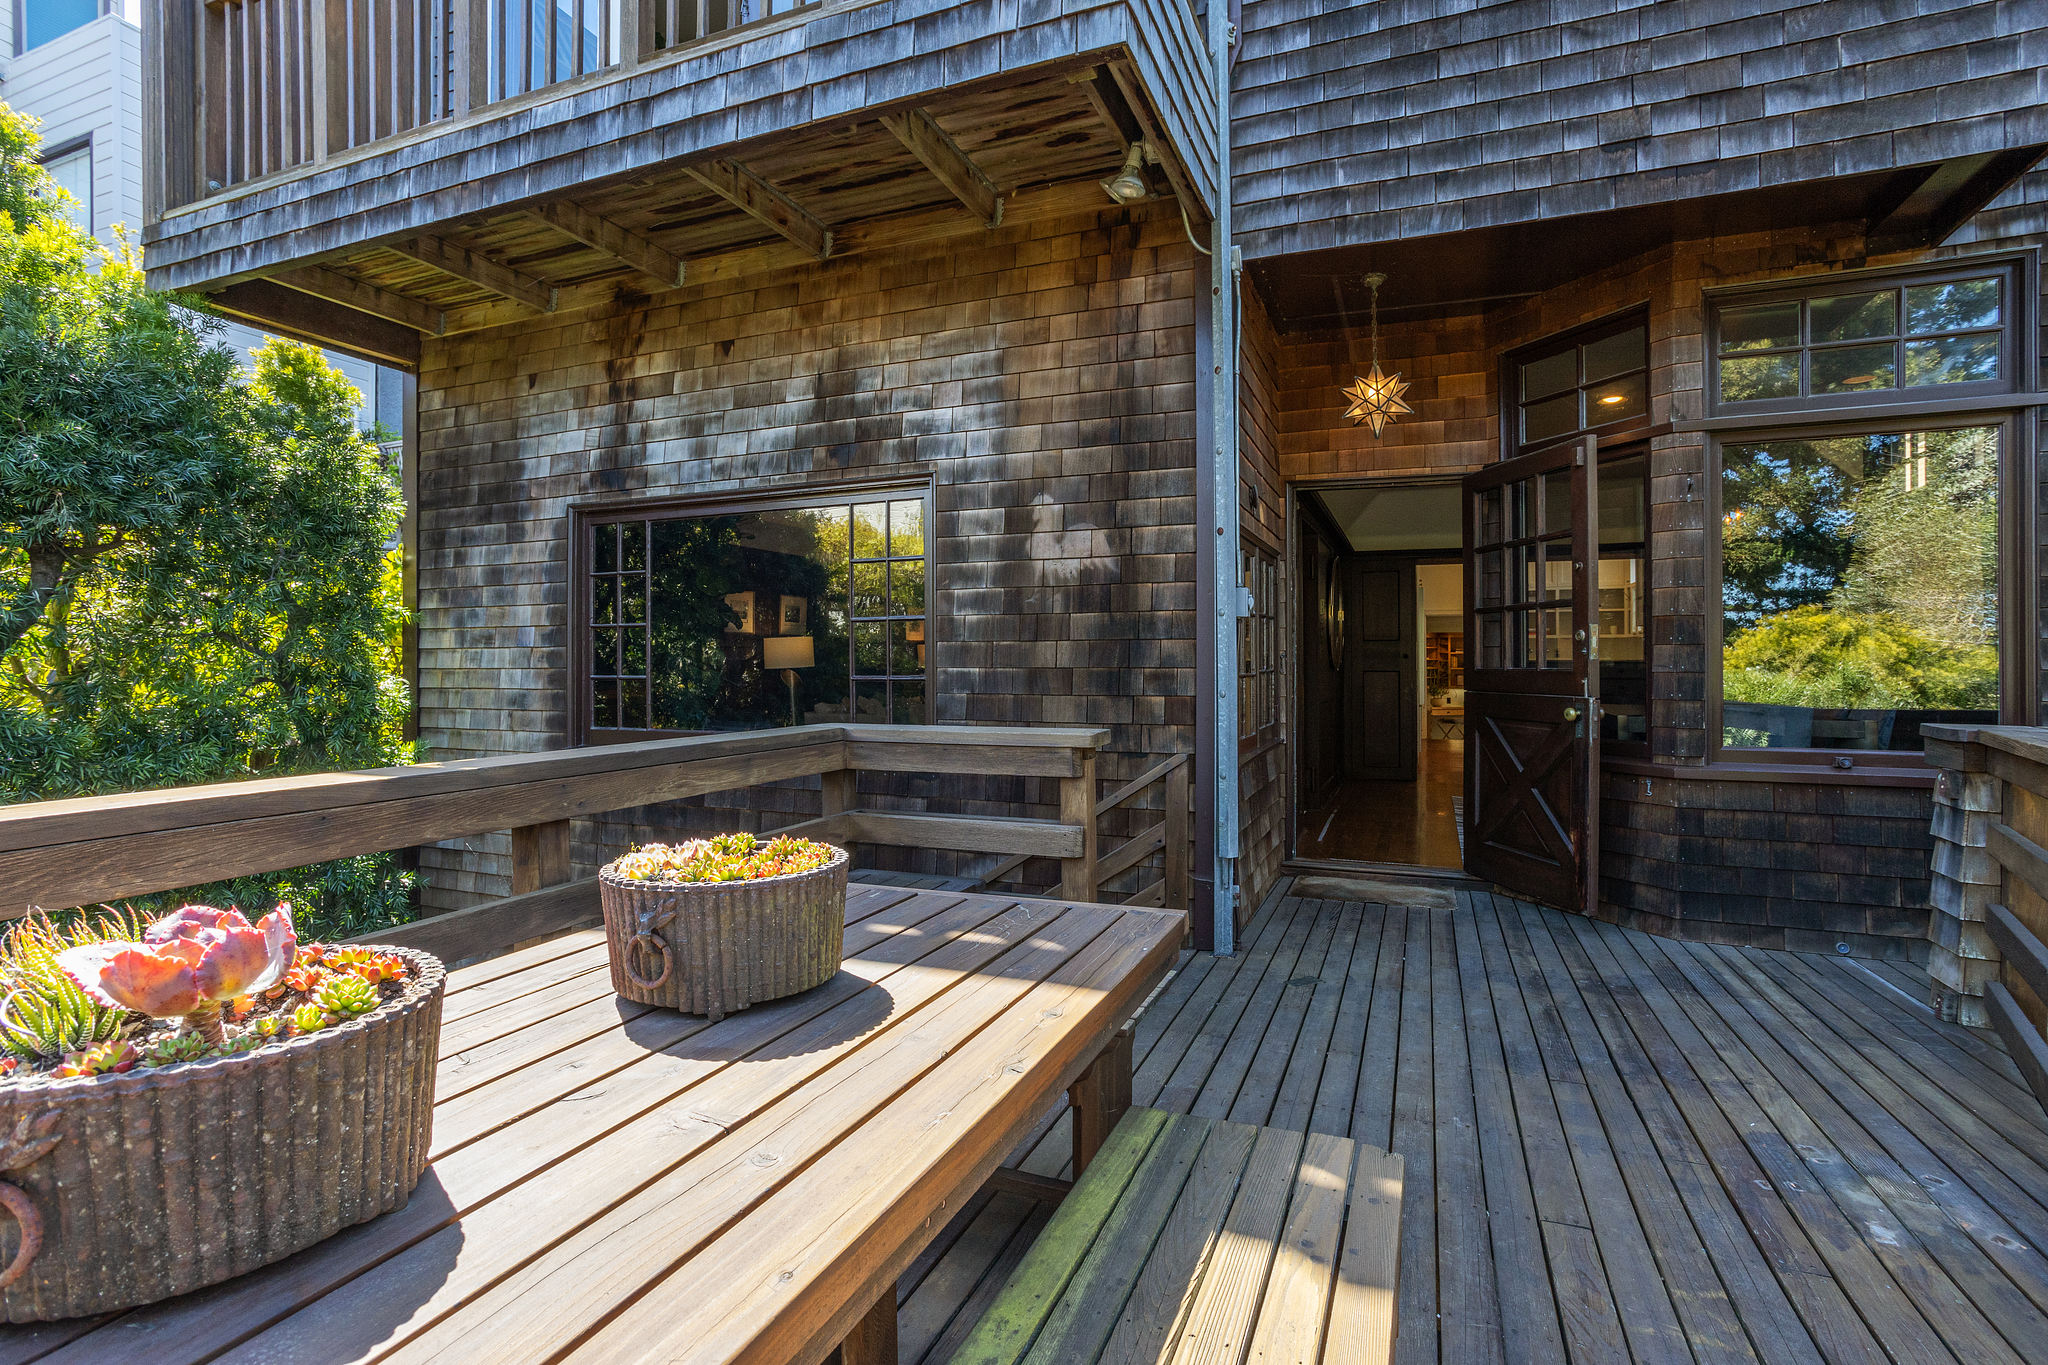 The home has many decks, this one the largest.